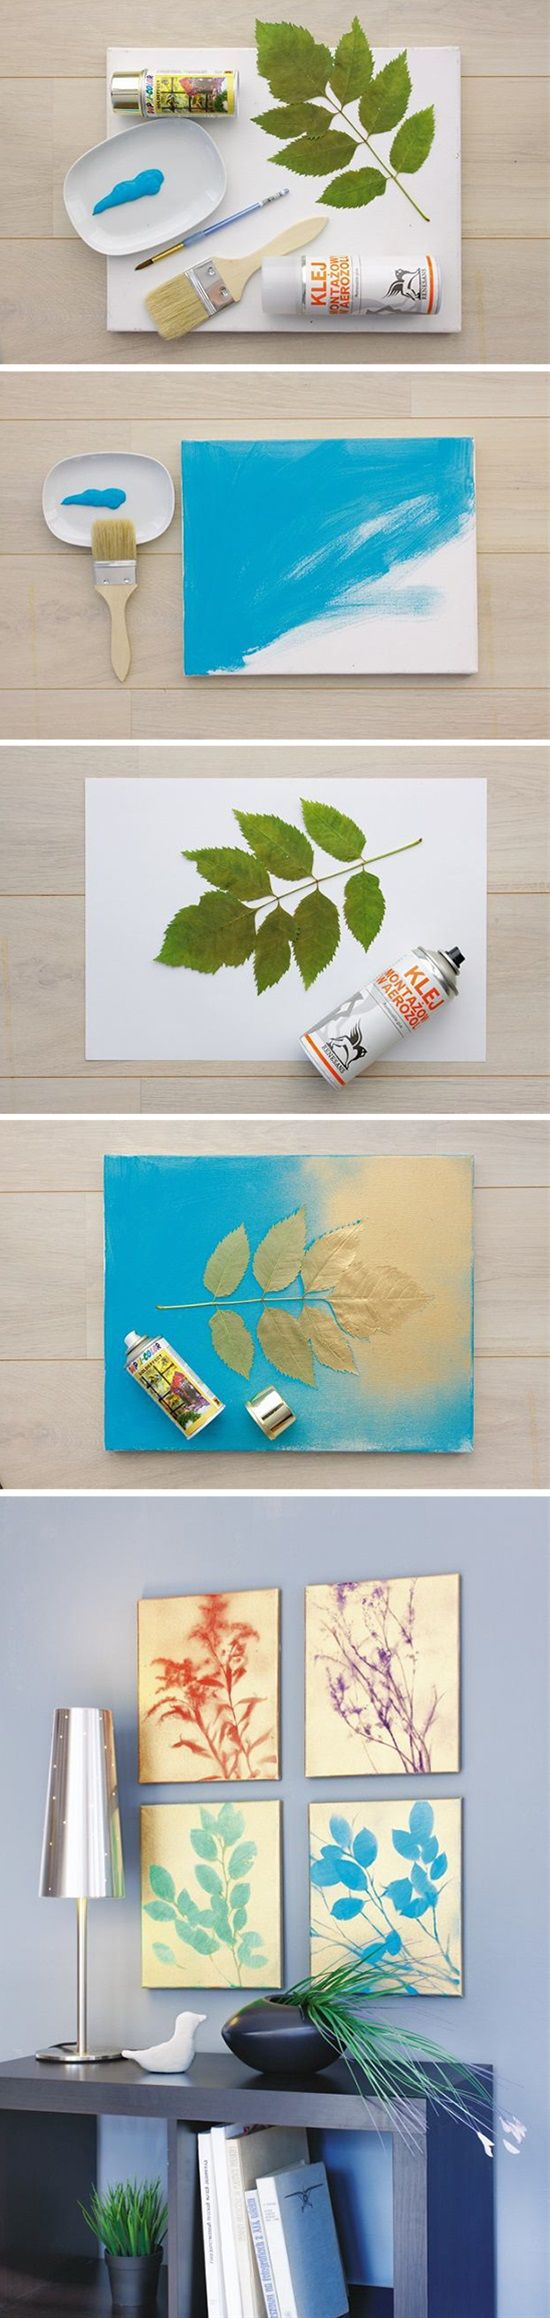 Uncategorized Diy Art Projects For Home 25 unique diy art projects ideas on pinterest arts and crafts for teens